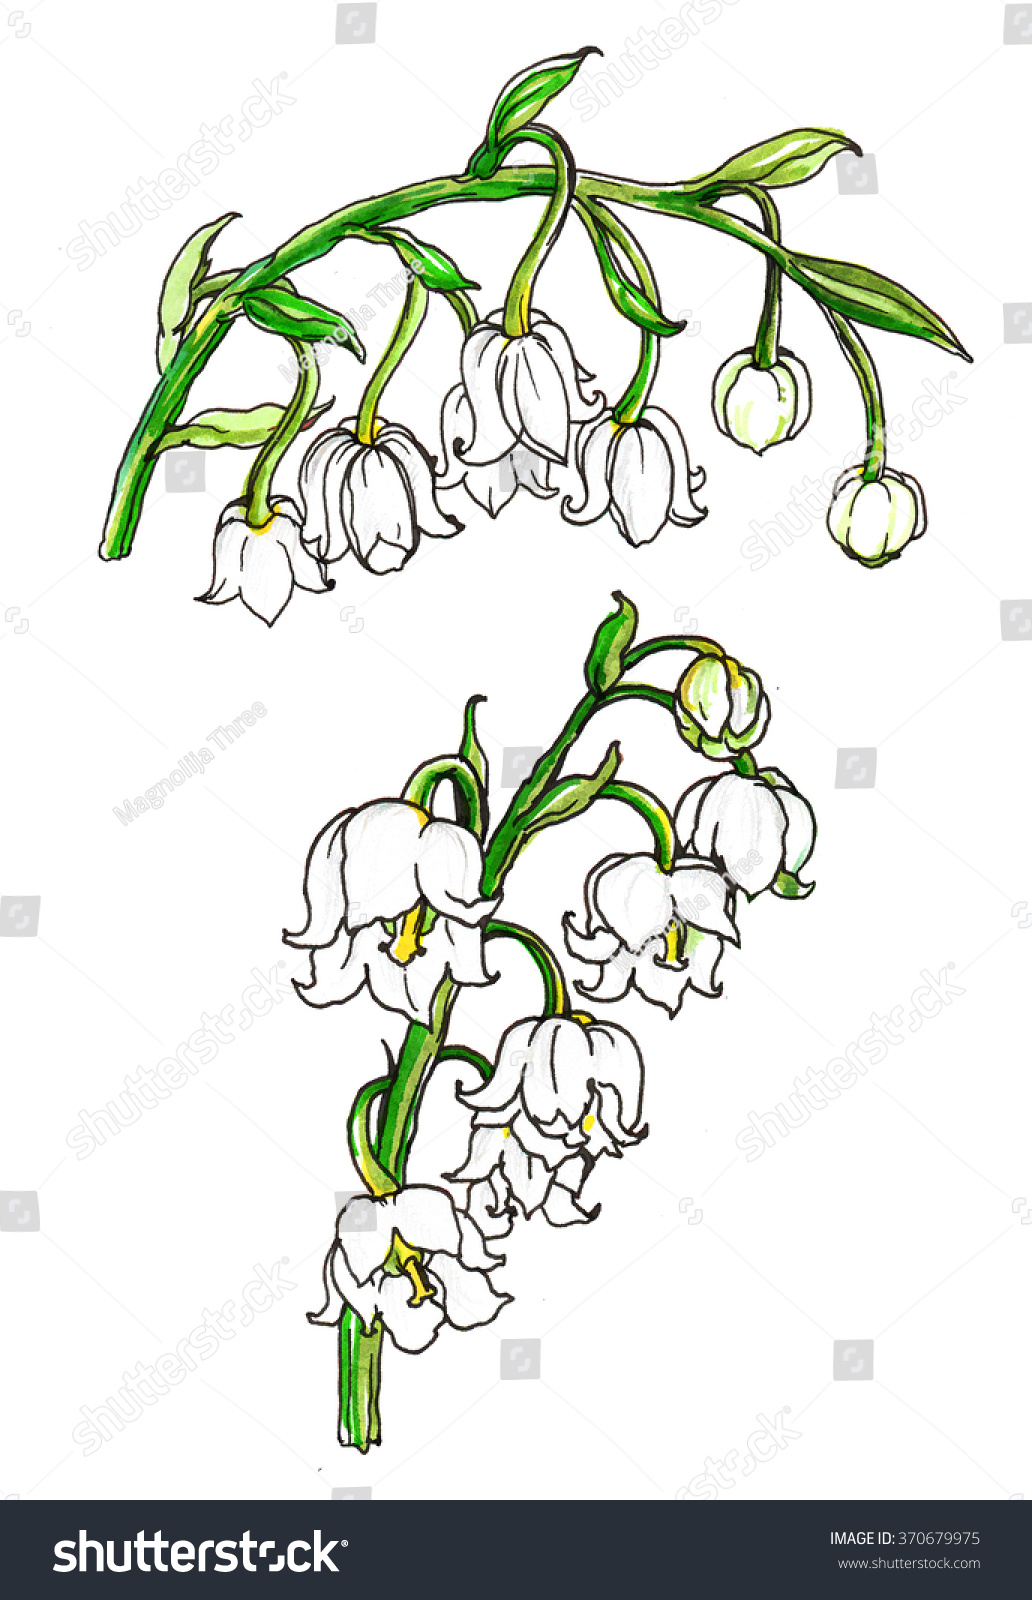 White lily valley spring flowers wedding stock illustration white lily of the valley spring flowers for wedding printing products cards invitations izmirmasajfo